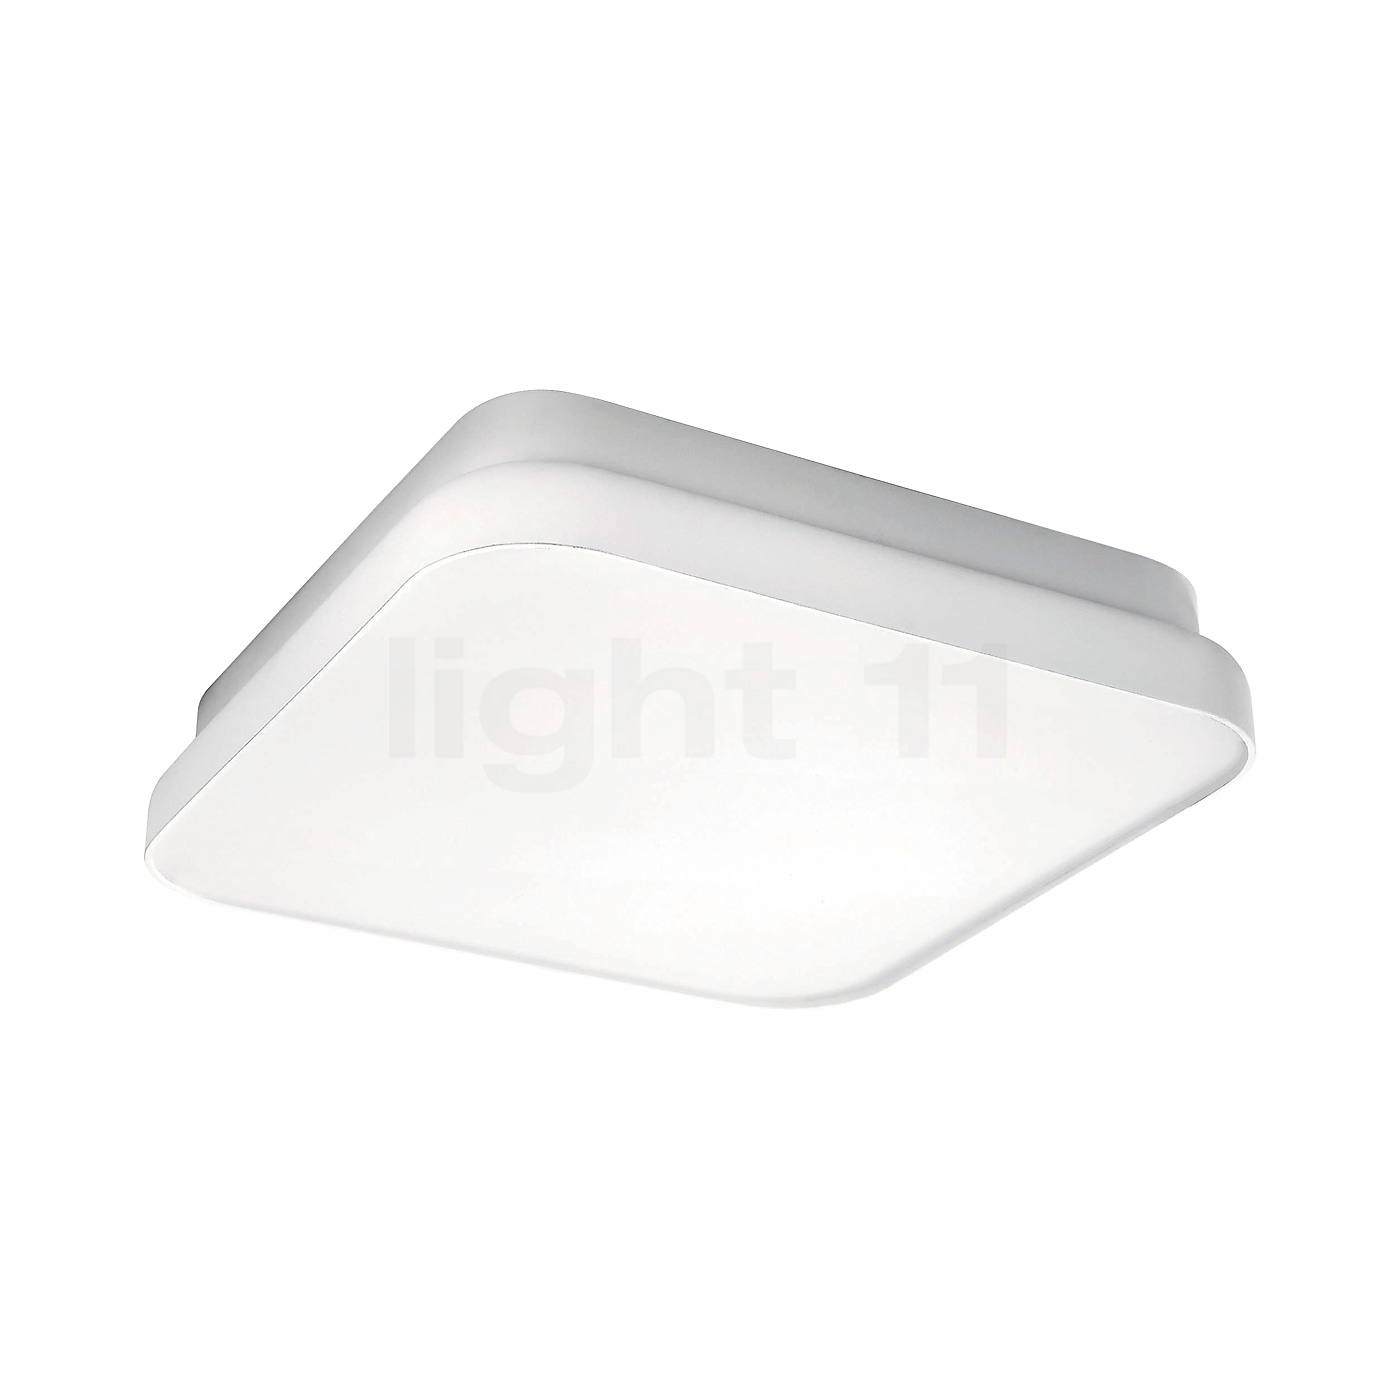 Inspiration about Philips Ecomoods Ceiling Light Is Must Have | Warisan Lighting In Philips Outdoor Ceiling Lights (#12 of 15)